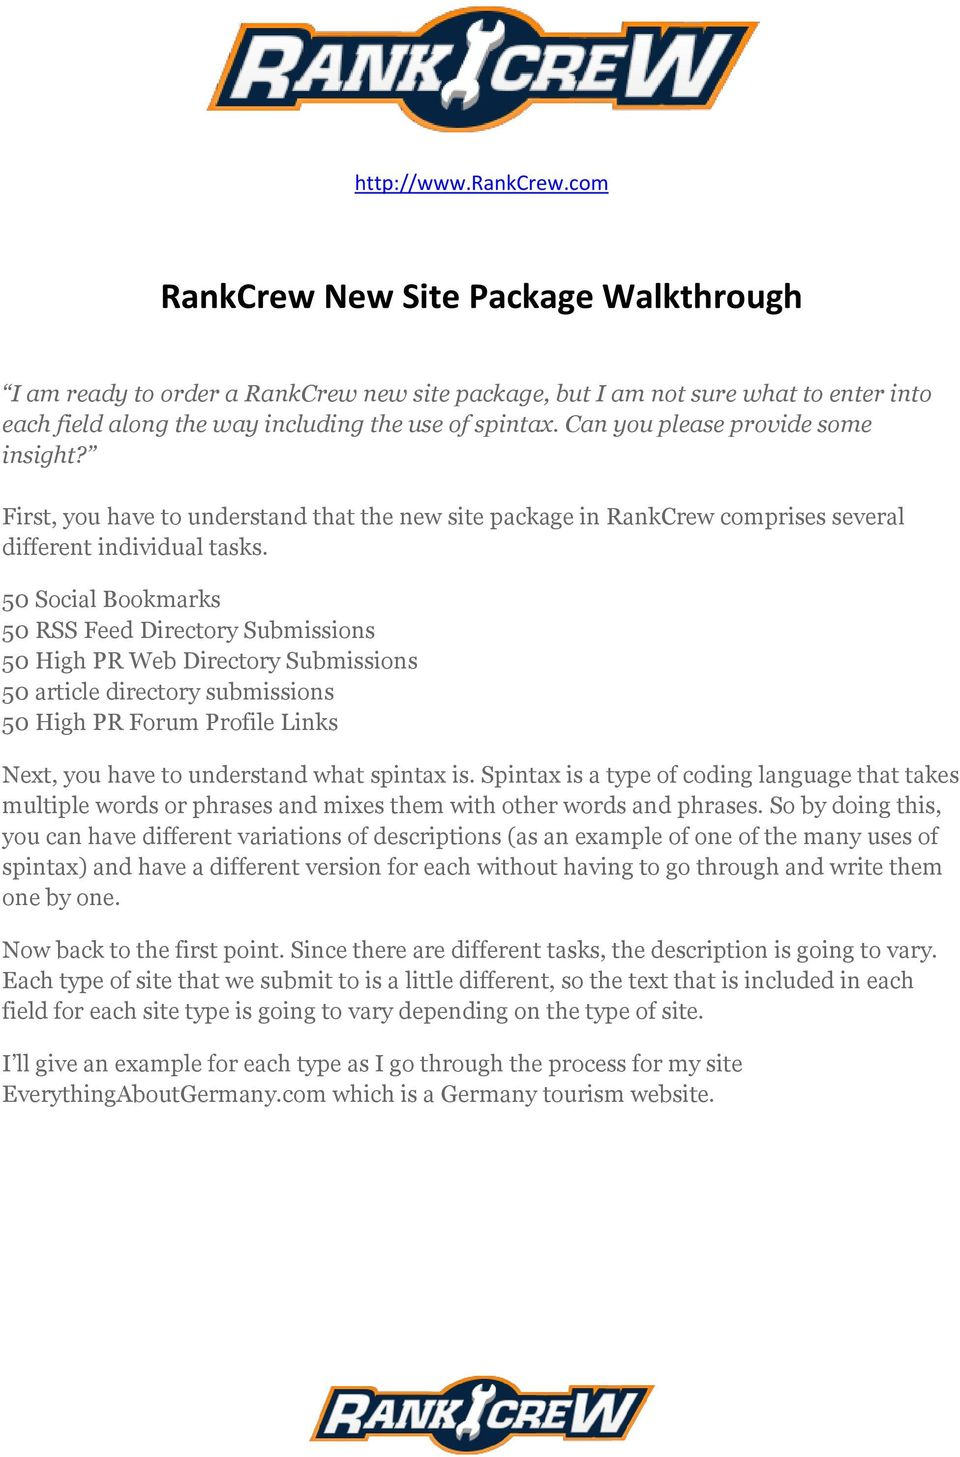 Can you please provide some insight? First, you have to understand that the new site package in RankCrew comprises several different individual tasks.